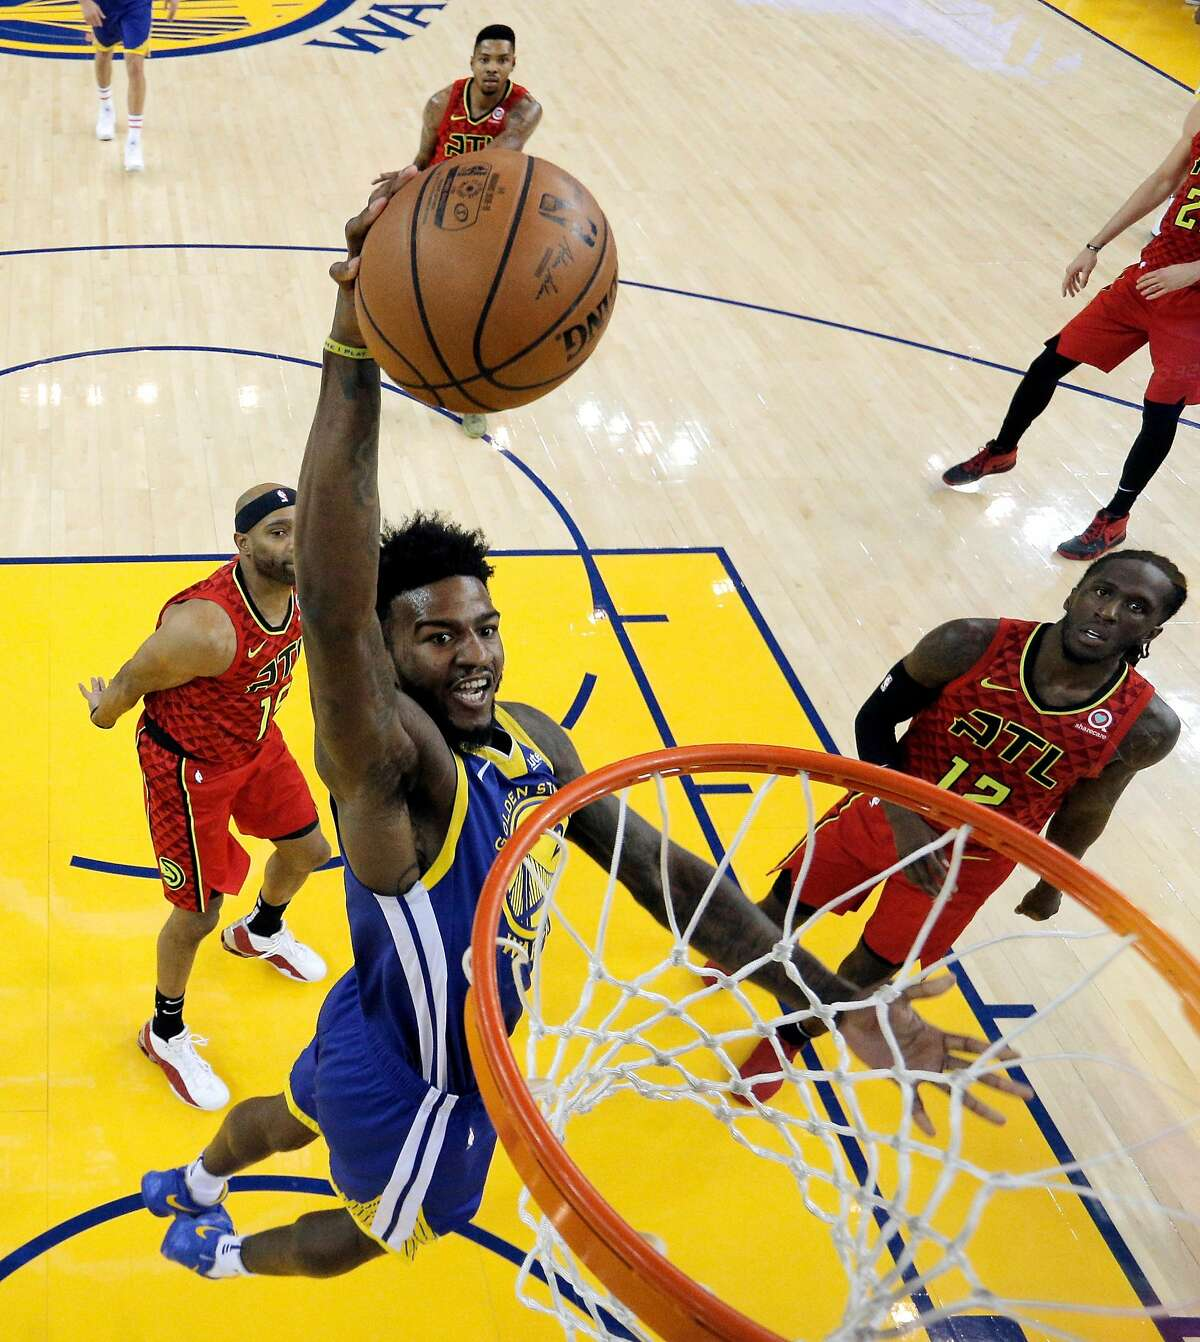 Jordan Bell (2) goes in for a dunk in the first half as the Golden State Warriors played the Atlanta Hawks at Oracle Arena in Oakland, Calif., on Tuesday, November 13, 2018.